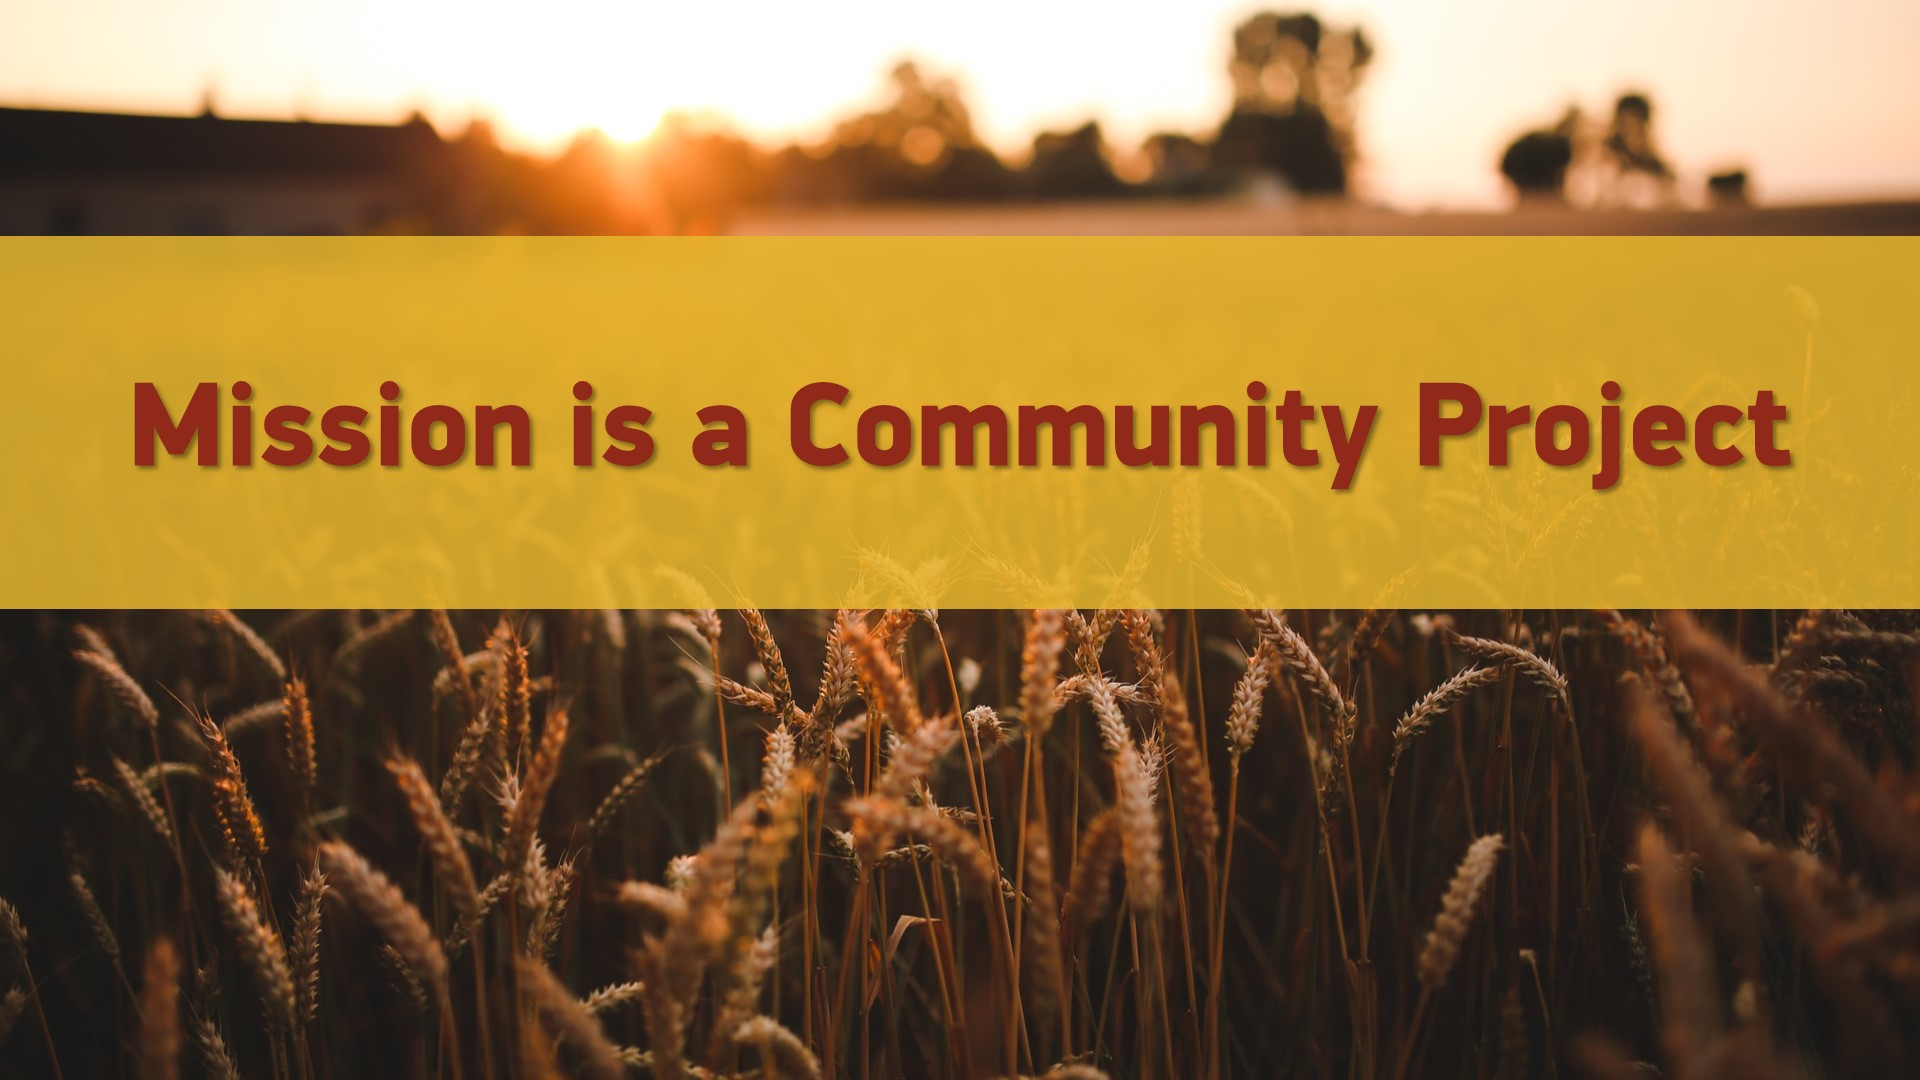 20190804 MISSION IS A COMMUNITY PROJECT.JPG